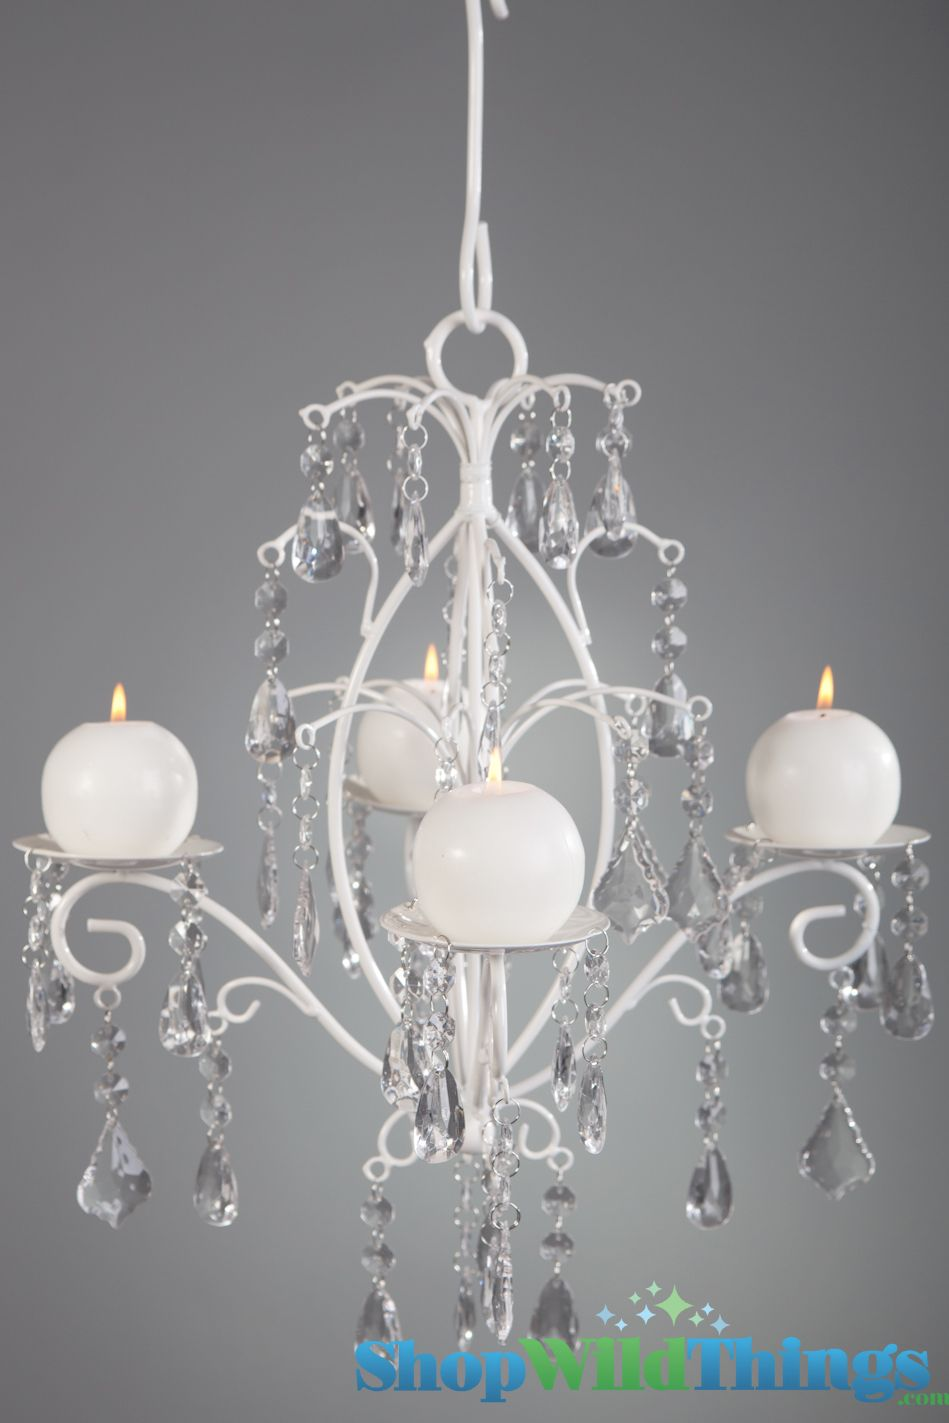 Rachelle floral candle chandelier 18 hanging candle chandelier rachelle crystal white hanging candle chandelier medium 4399 love probably spray in a bronzegold color arubaitofo Choice Image